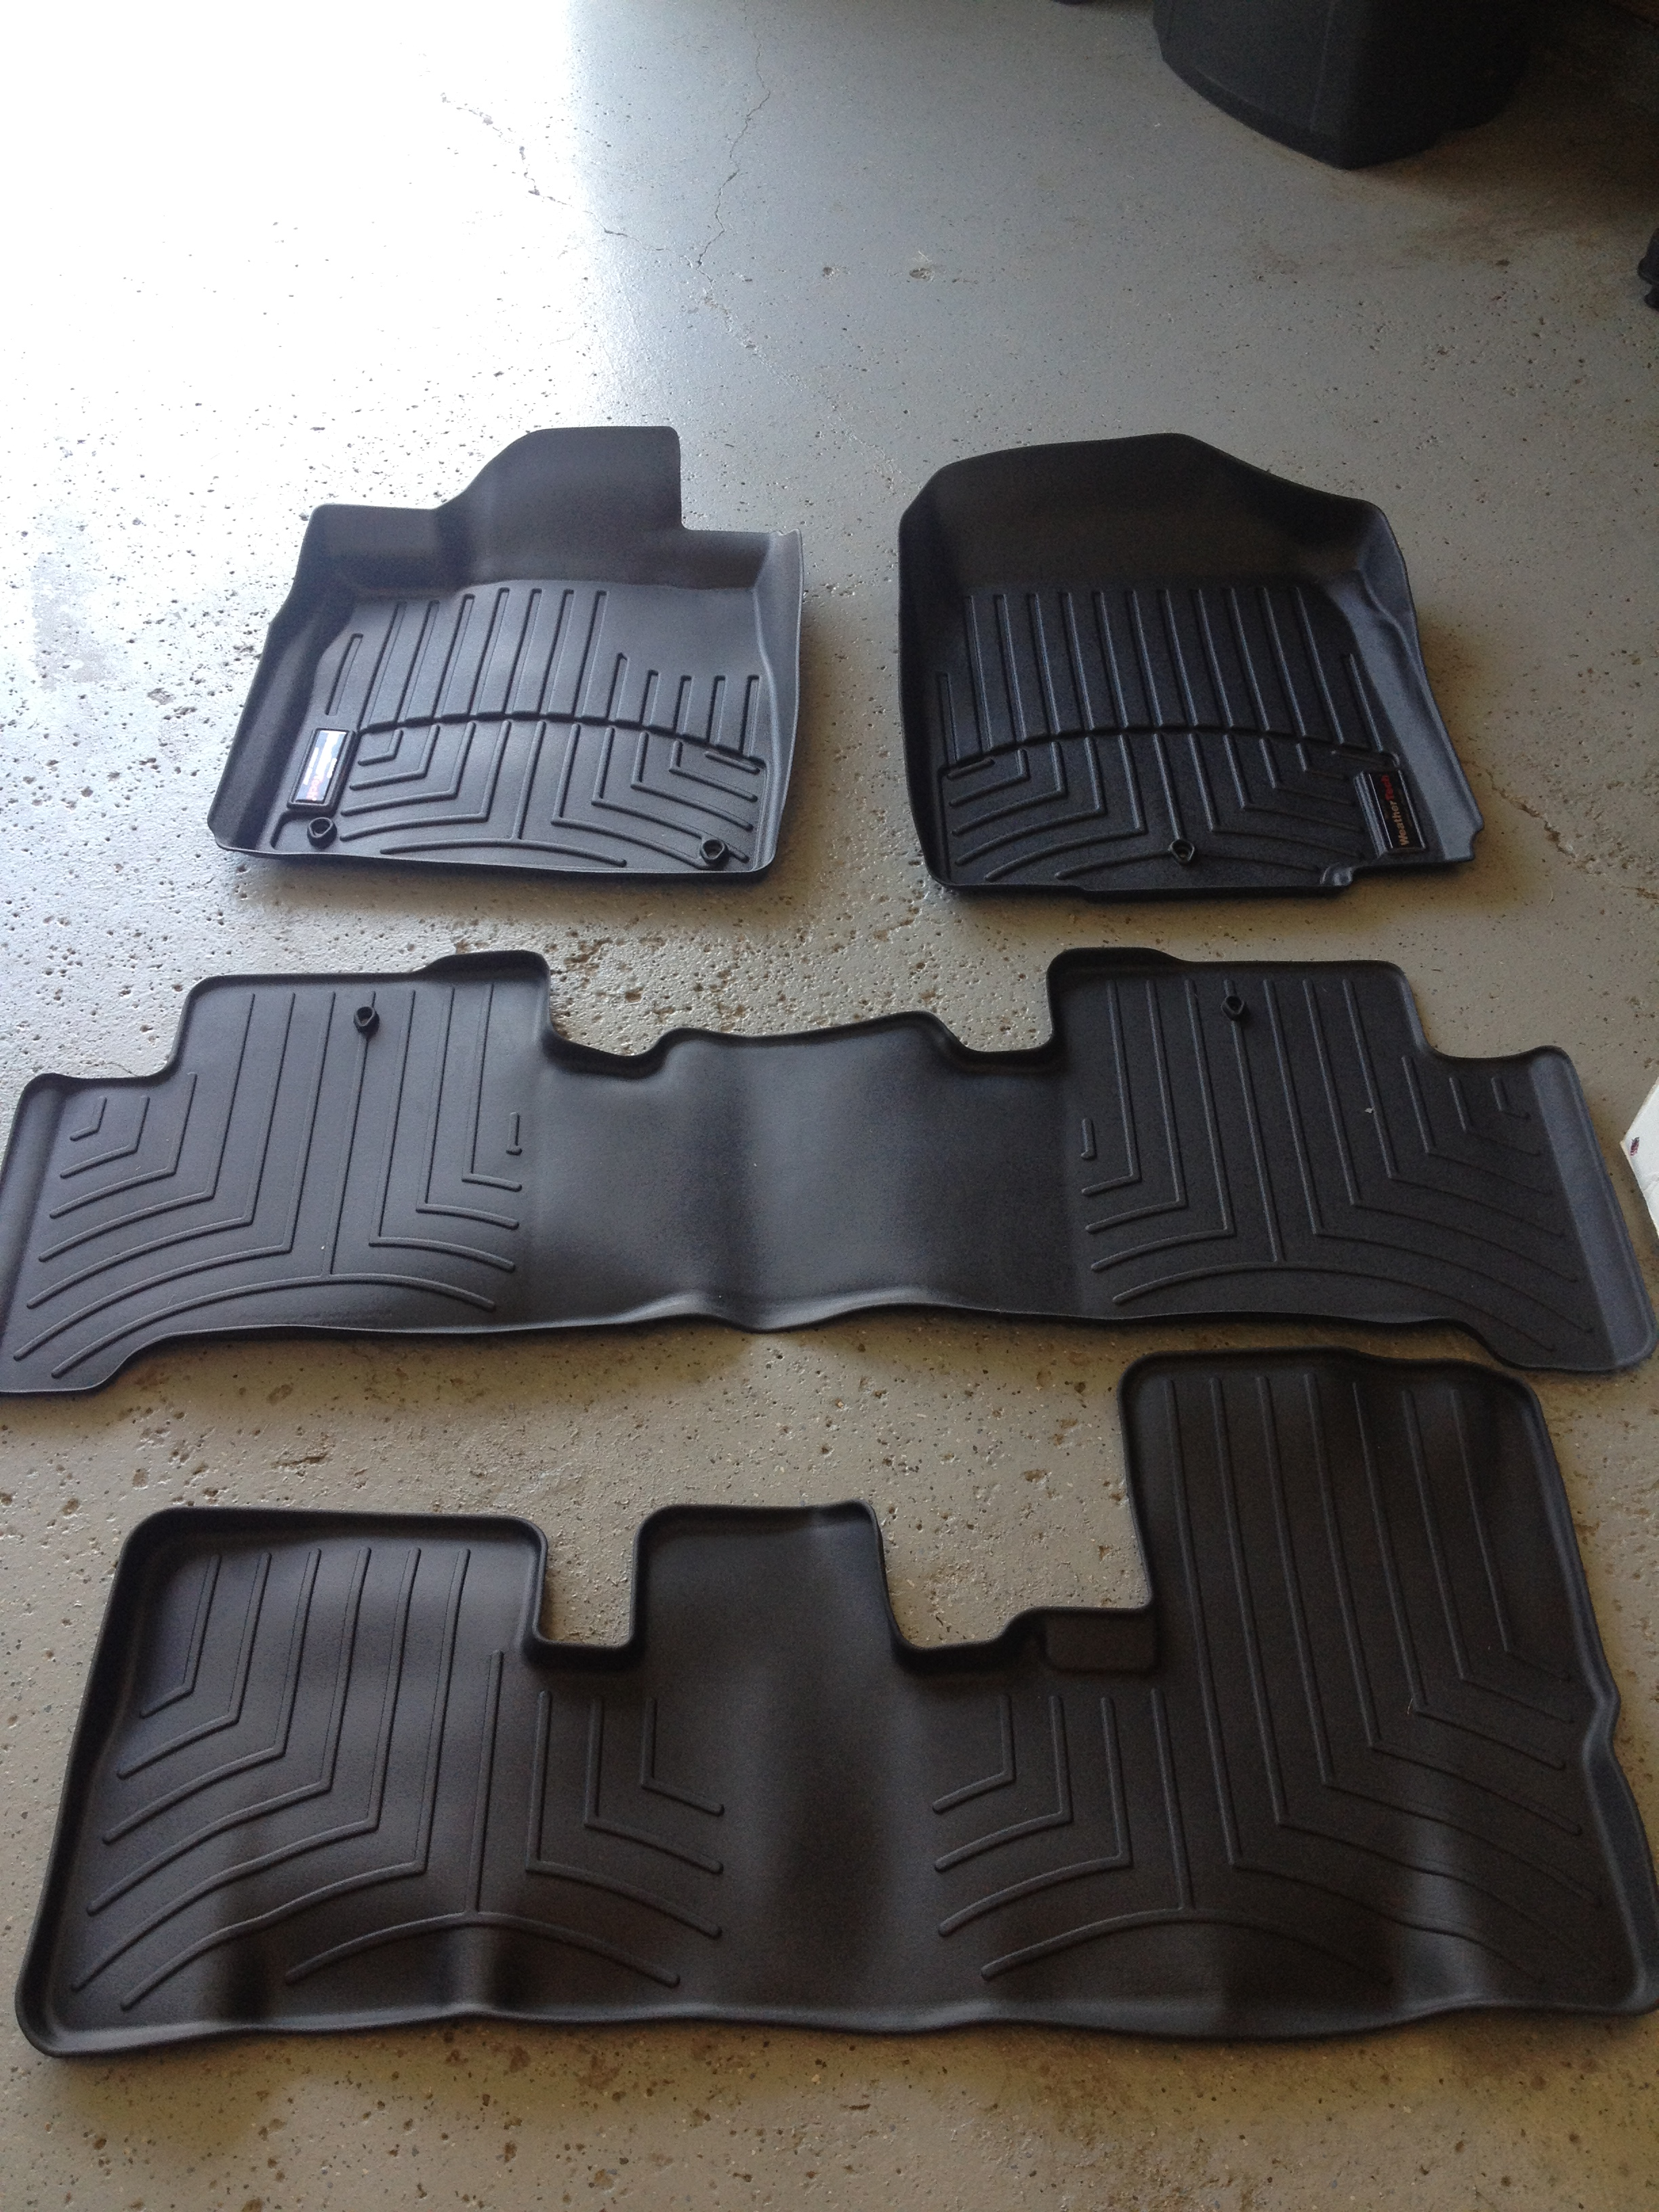 celerio at fit car pinterest floor maruti pin for cars carproductsonline kmh products mat utility suzuki caraccessoriesonline laser mats online carmats carplus shop